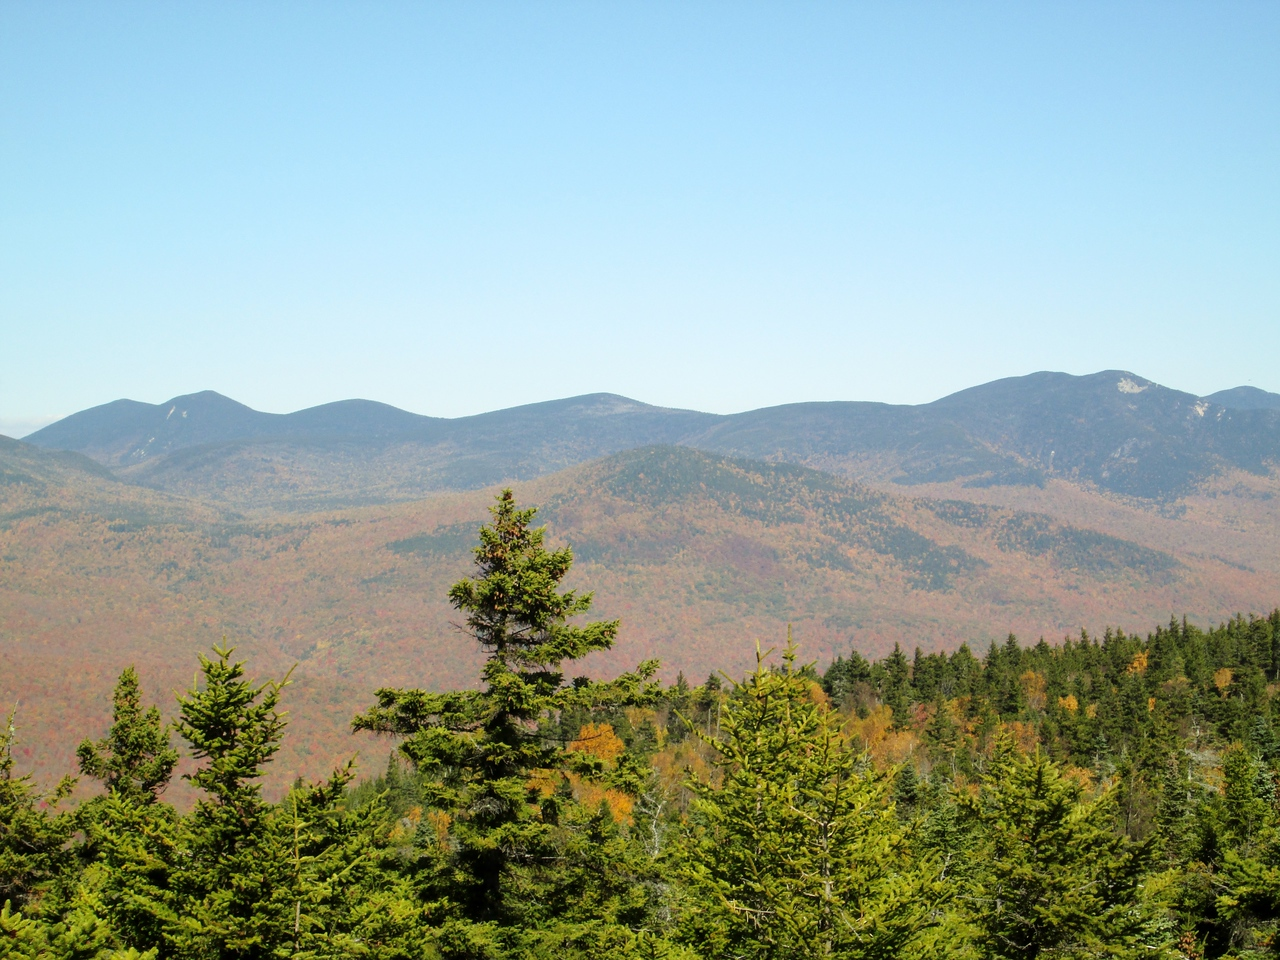 View from the ledges just before the summit